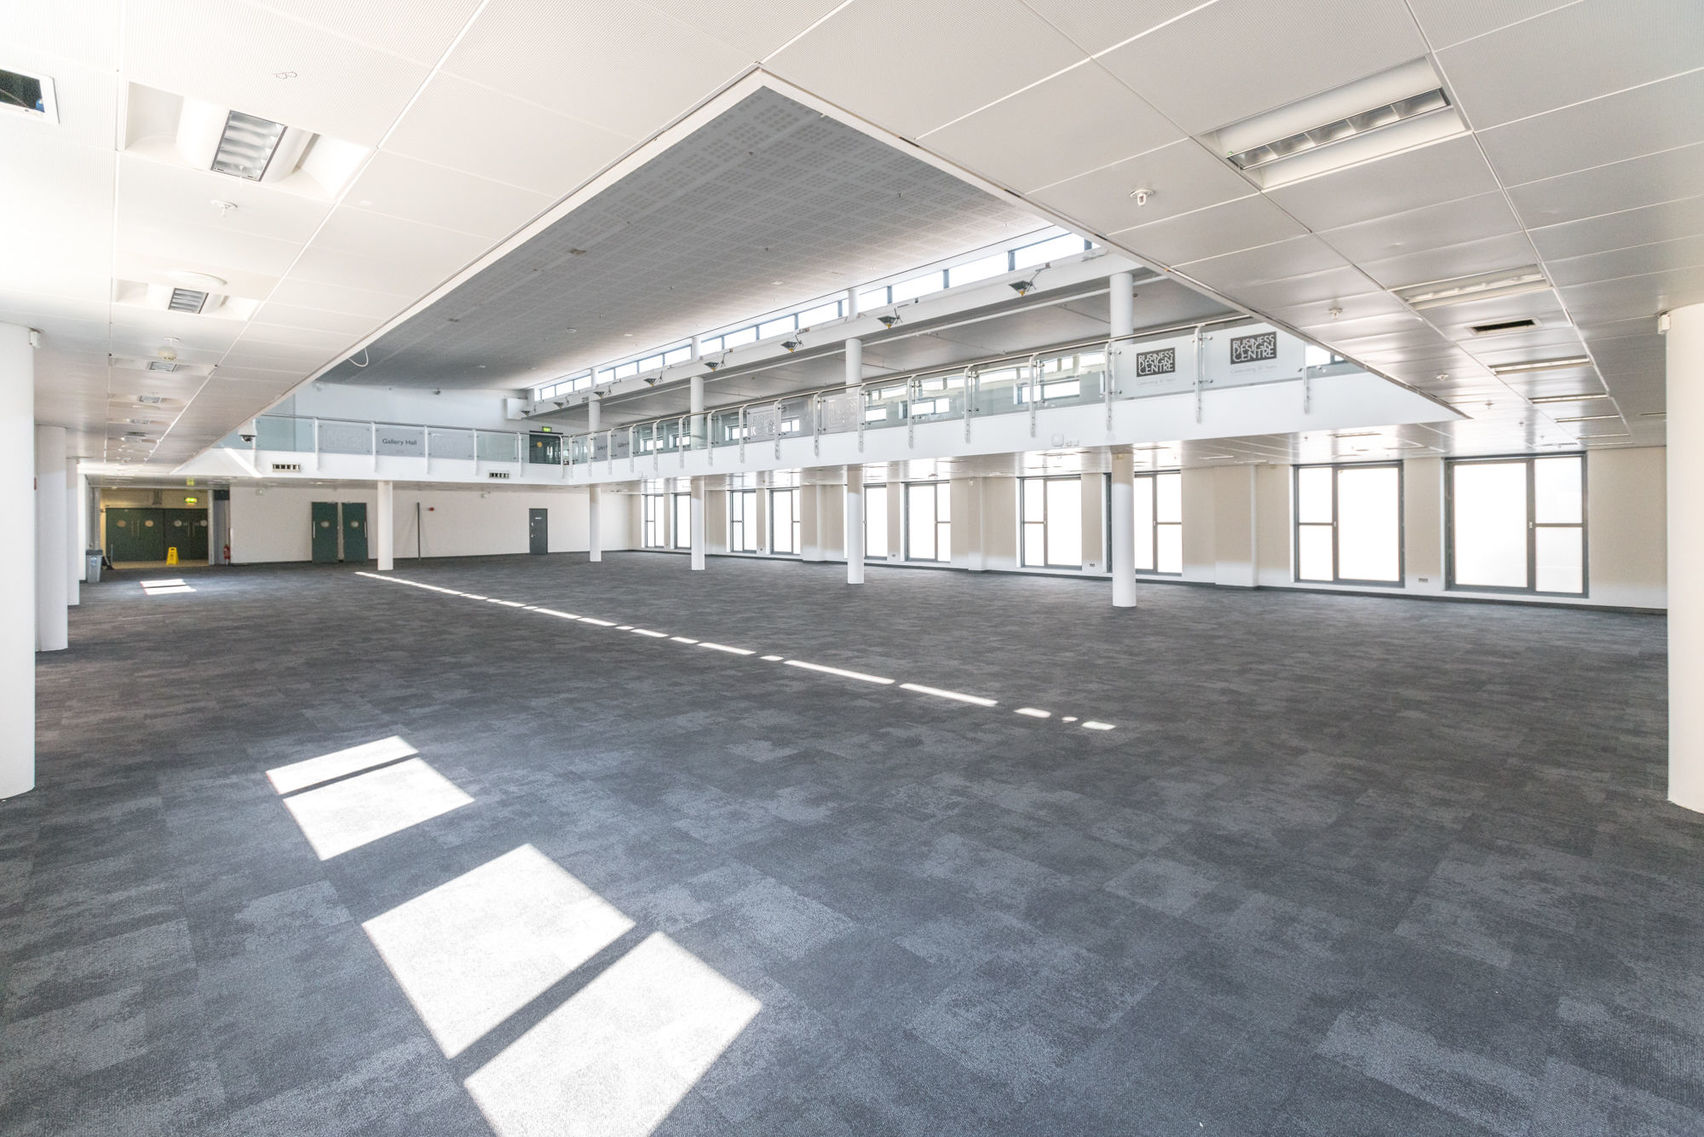 Gallery Hall, Business Design Centre